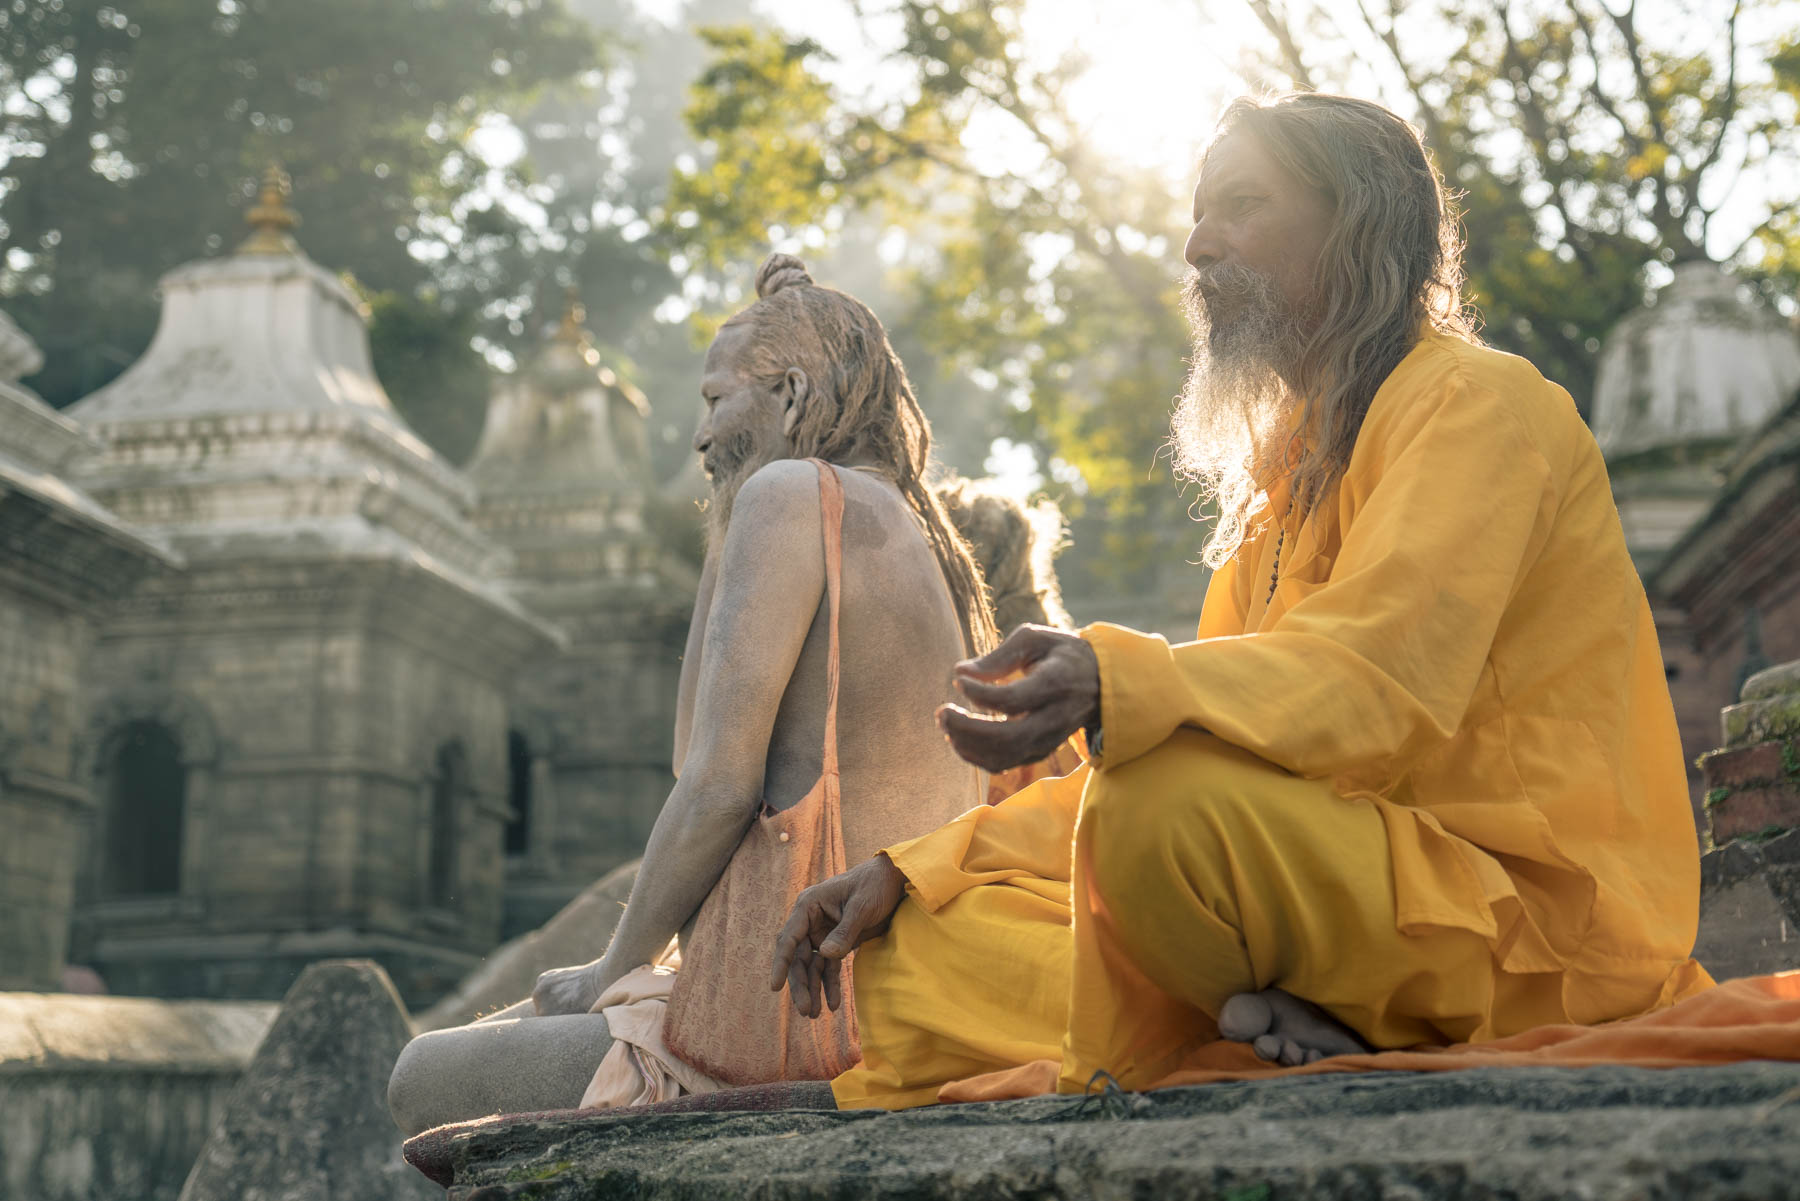 Sadhu's gather outside of the Shree Pashupatinath temple in Katmandu.